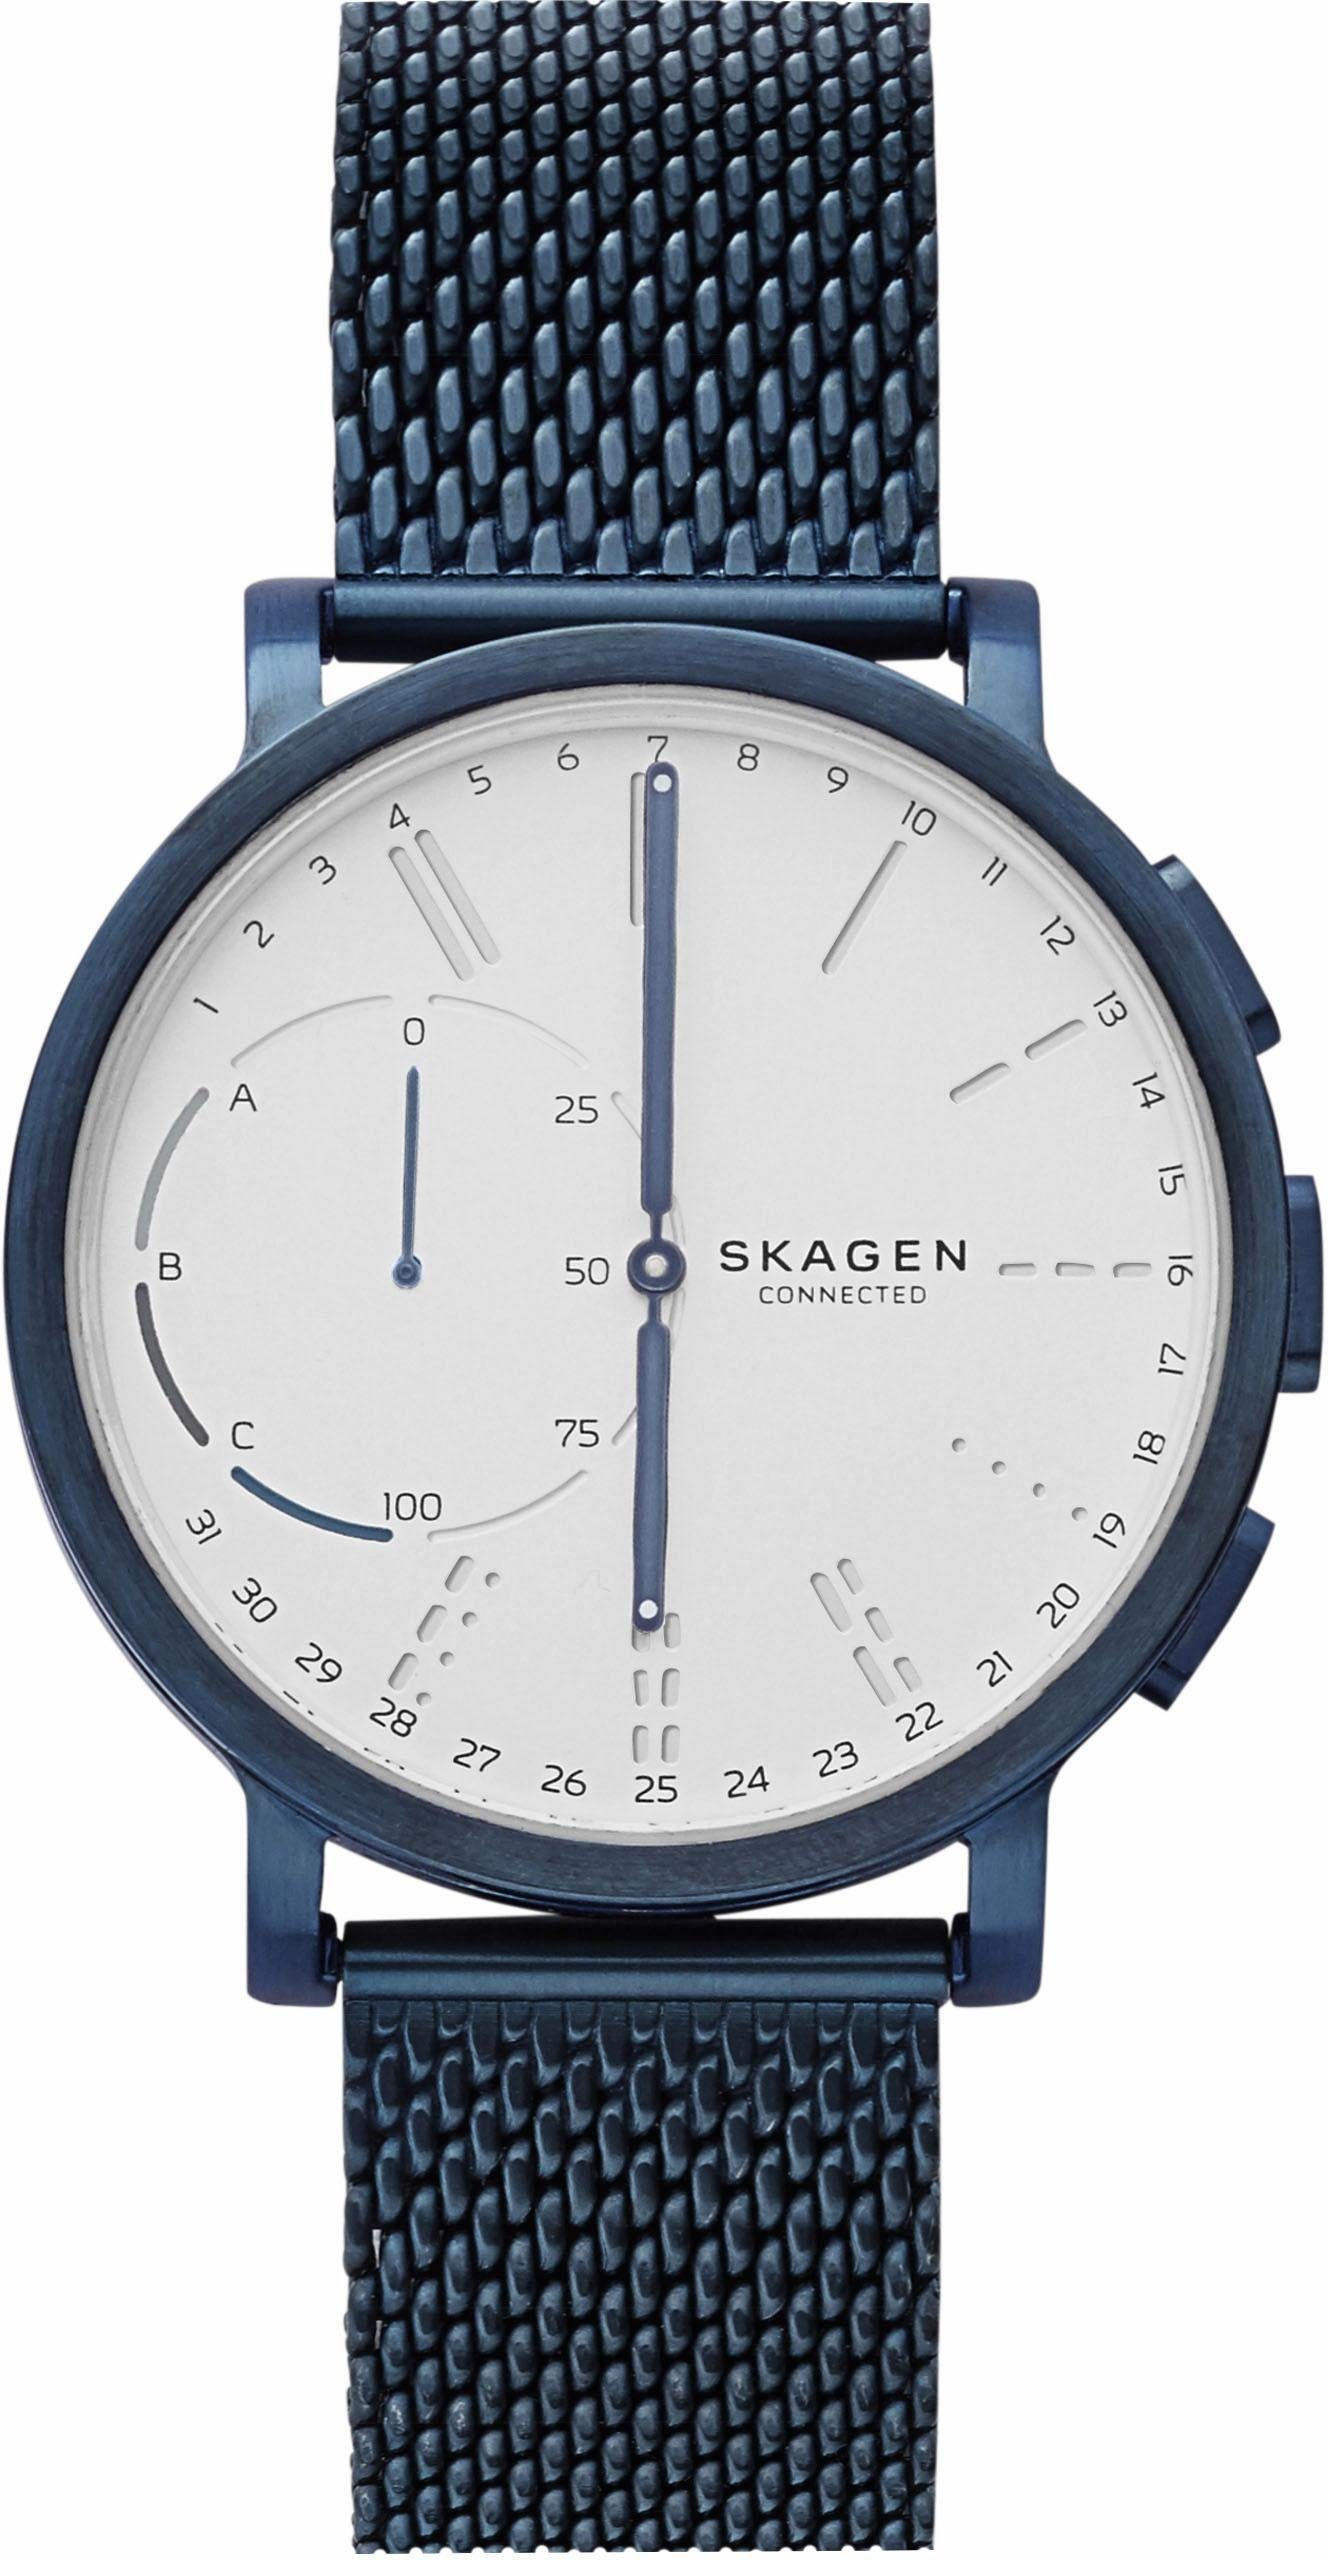 SKAGEN CONNECTED HAGEN CONNECTED, SK1107 Smartwatch (Android Wear)